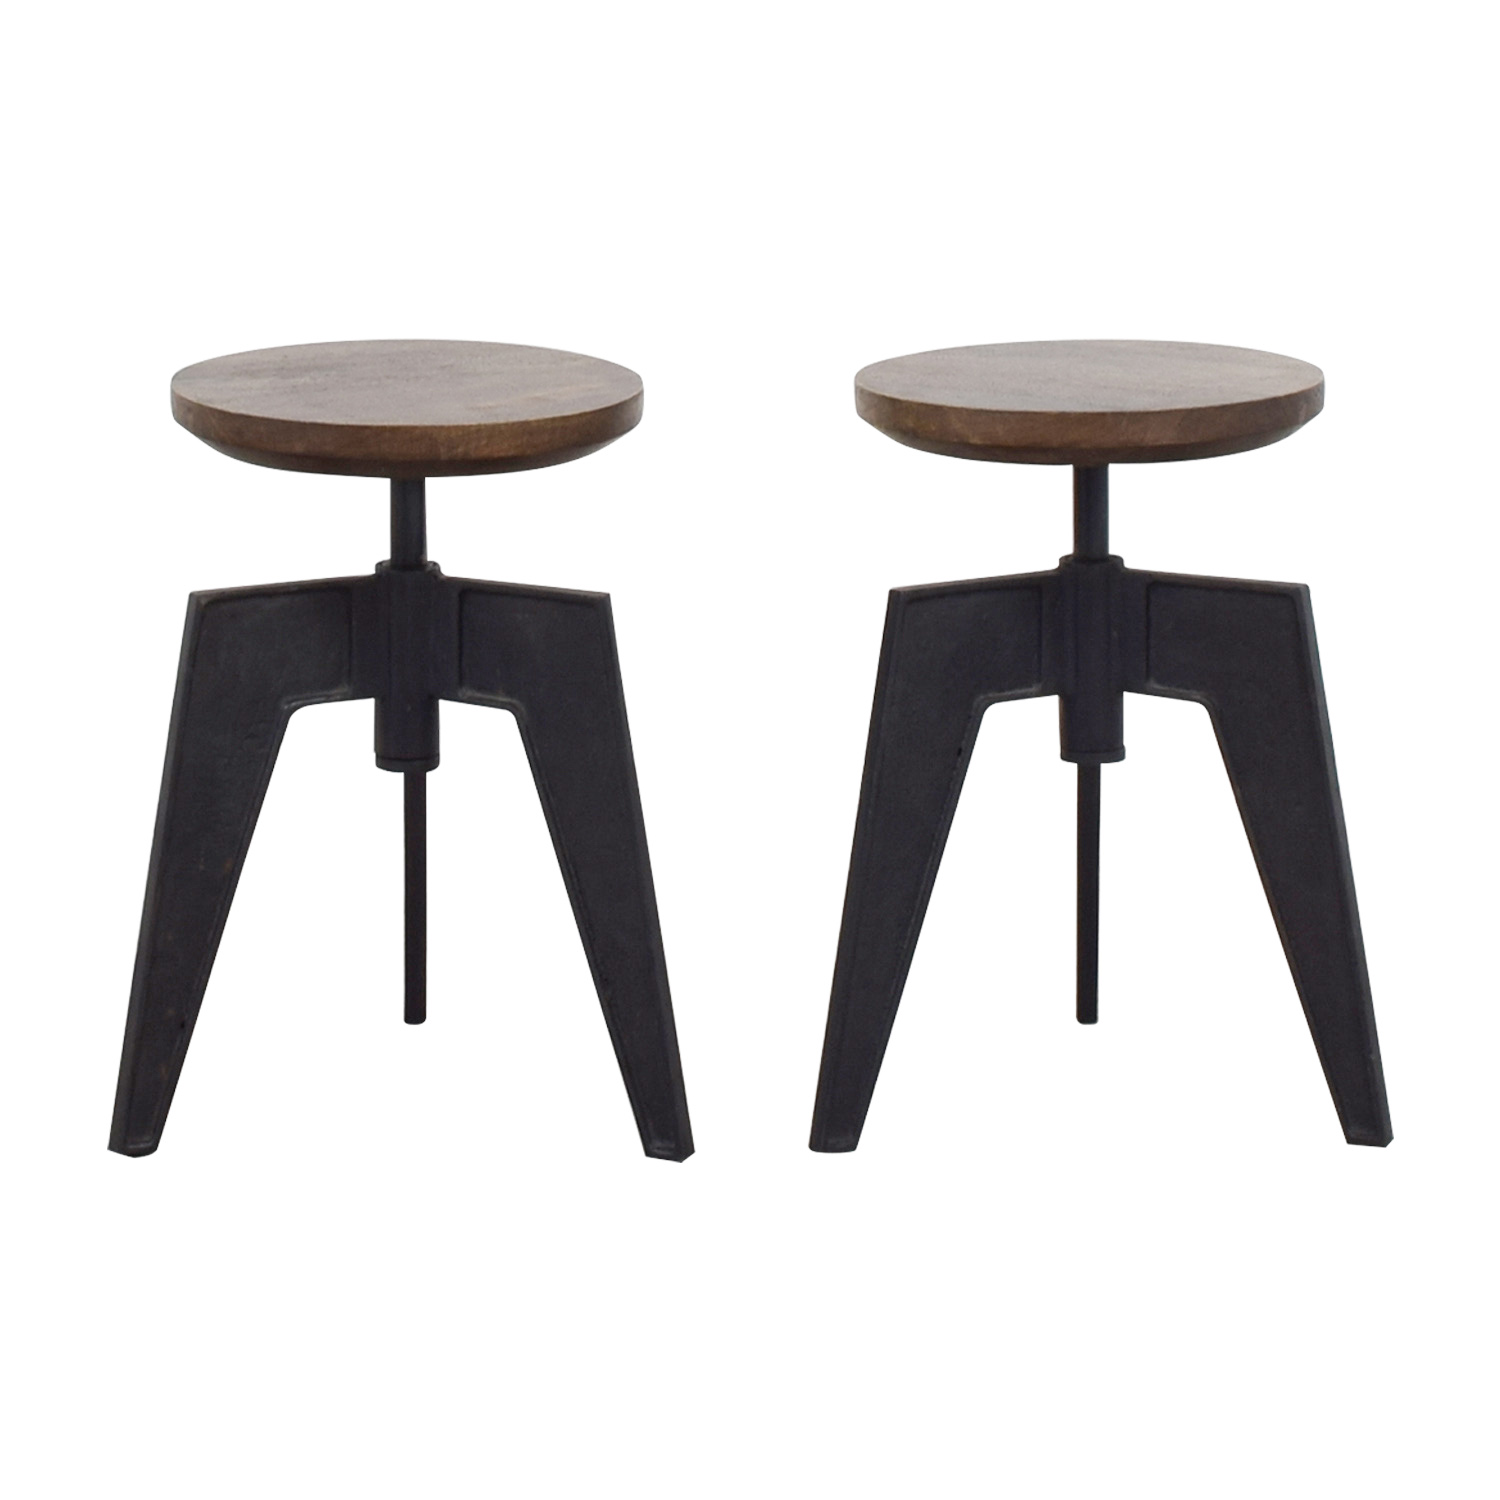 CB2 CB2 Wood and Metal Stools discount